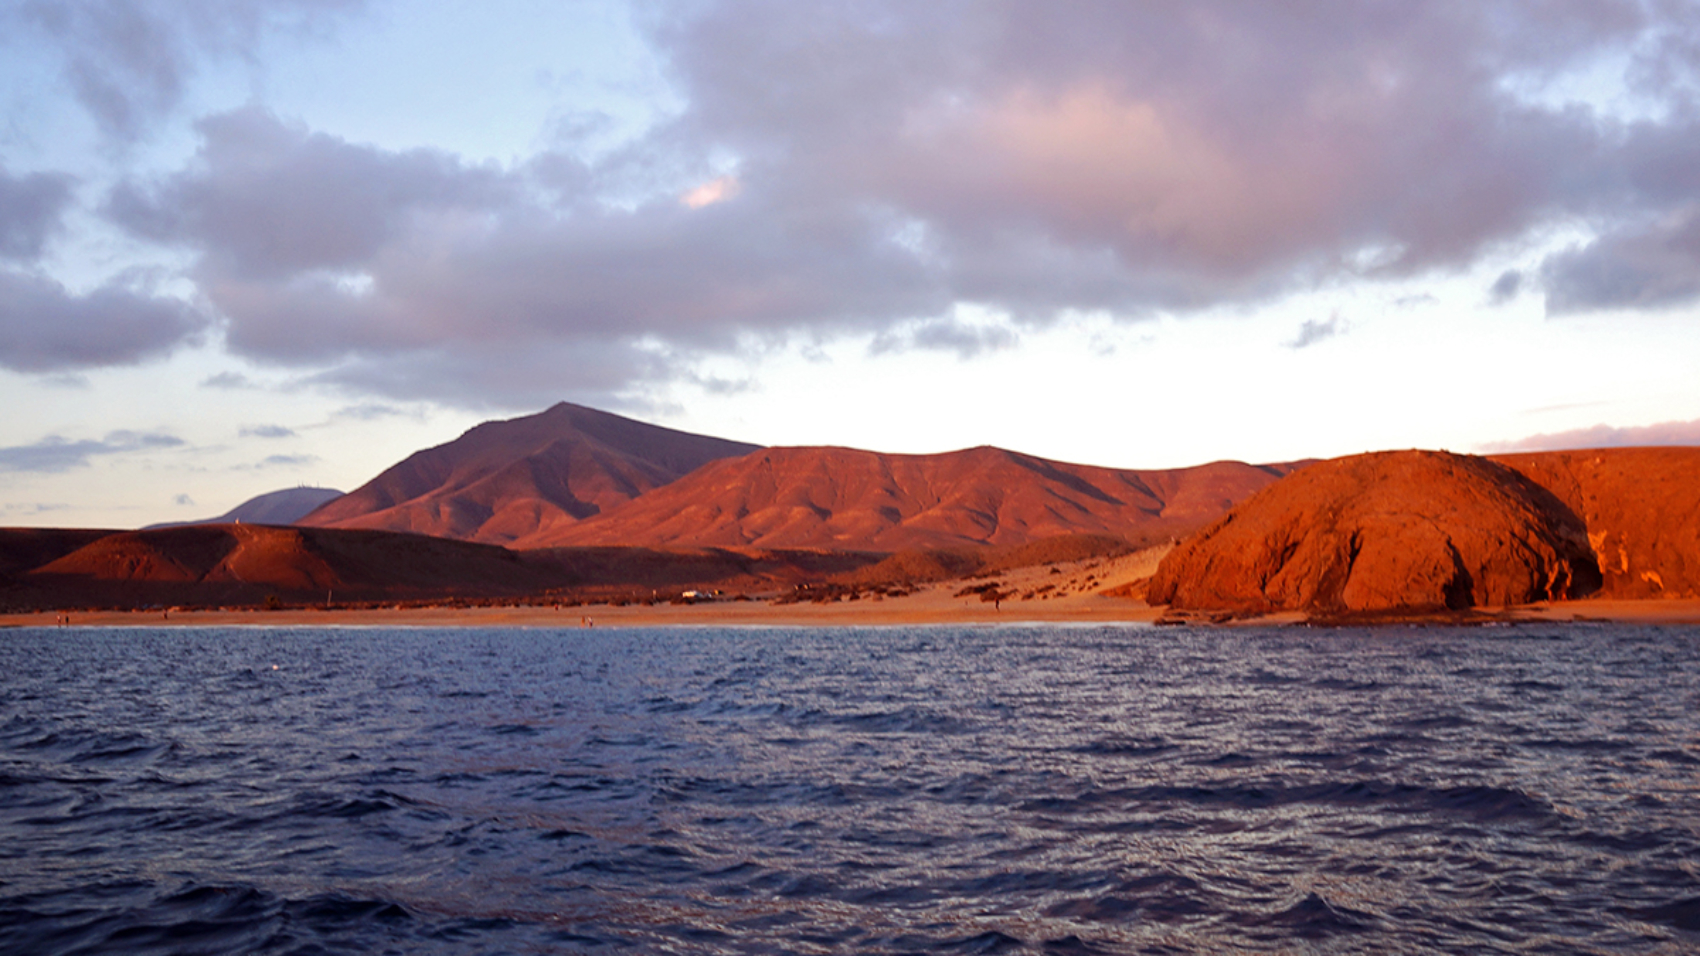 sunset over Playa Papagayo, Lanzarote, Canary Islands